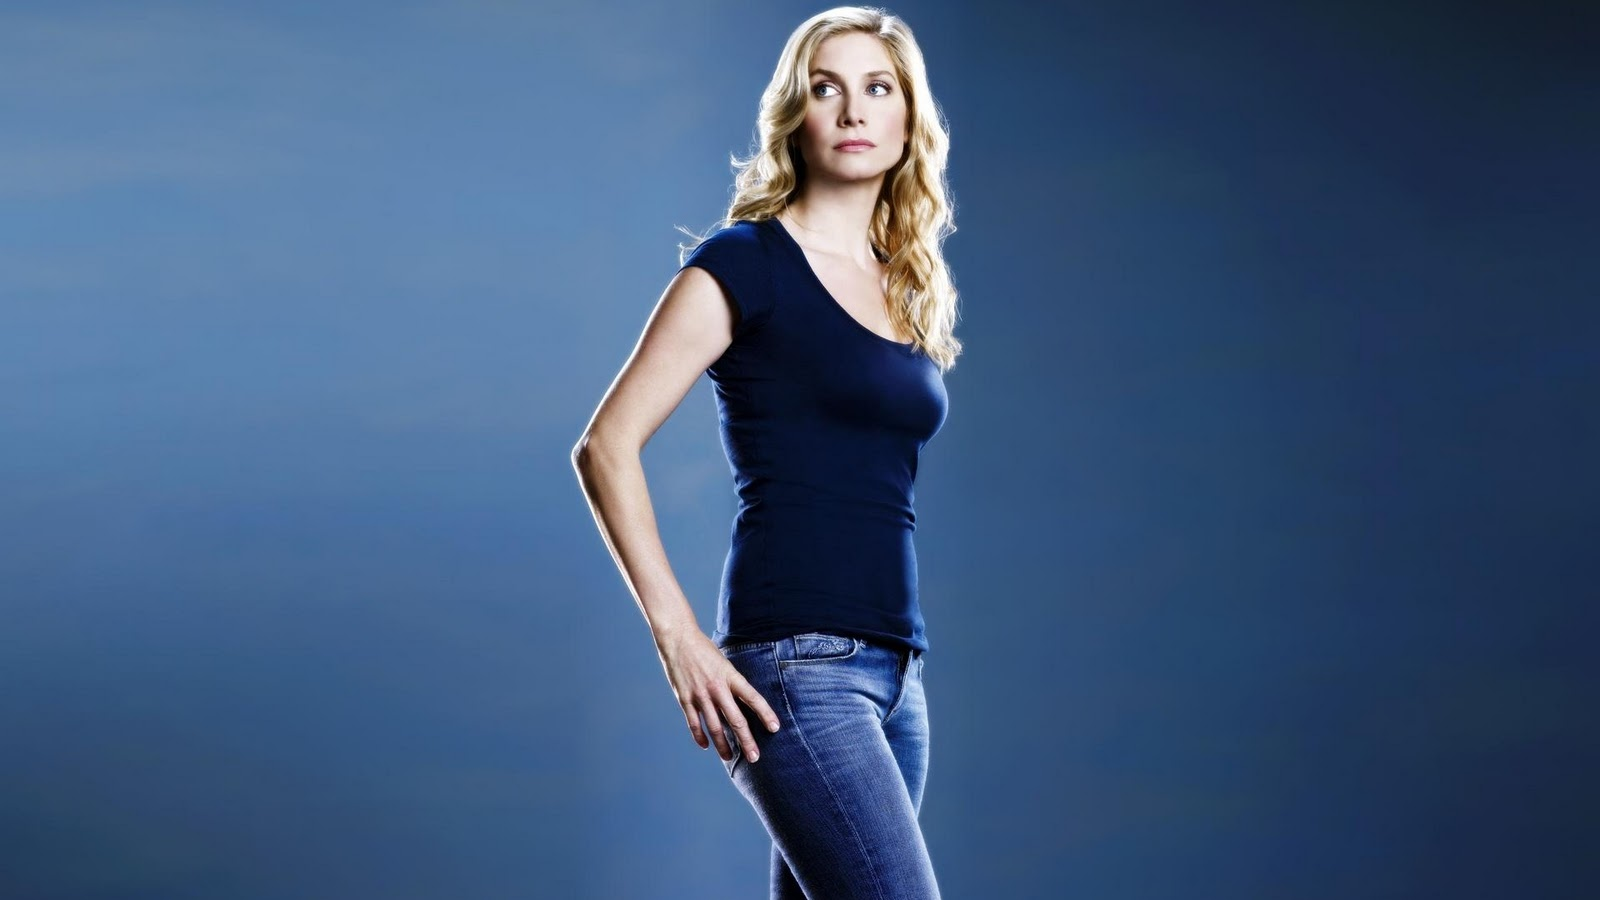 elizabeth mitchell computer hd - photo #2